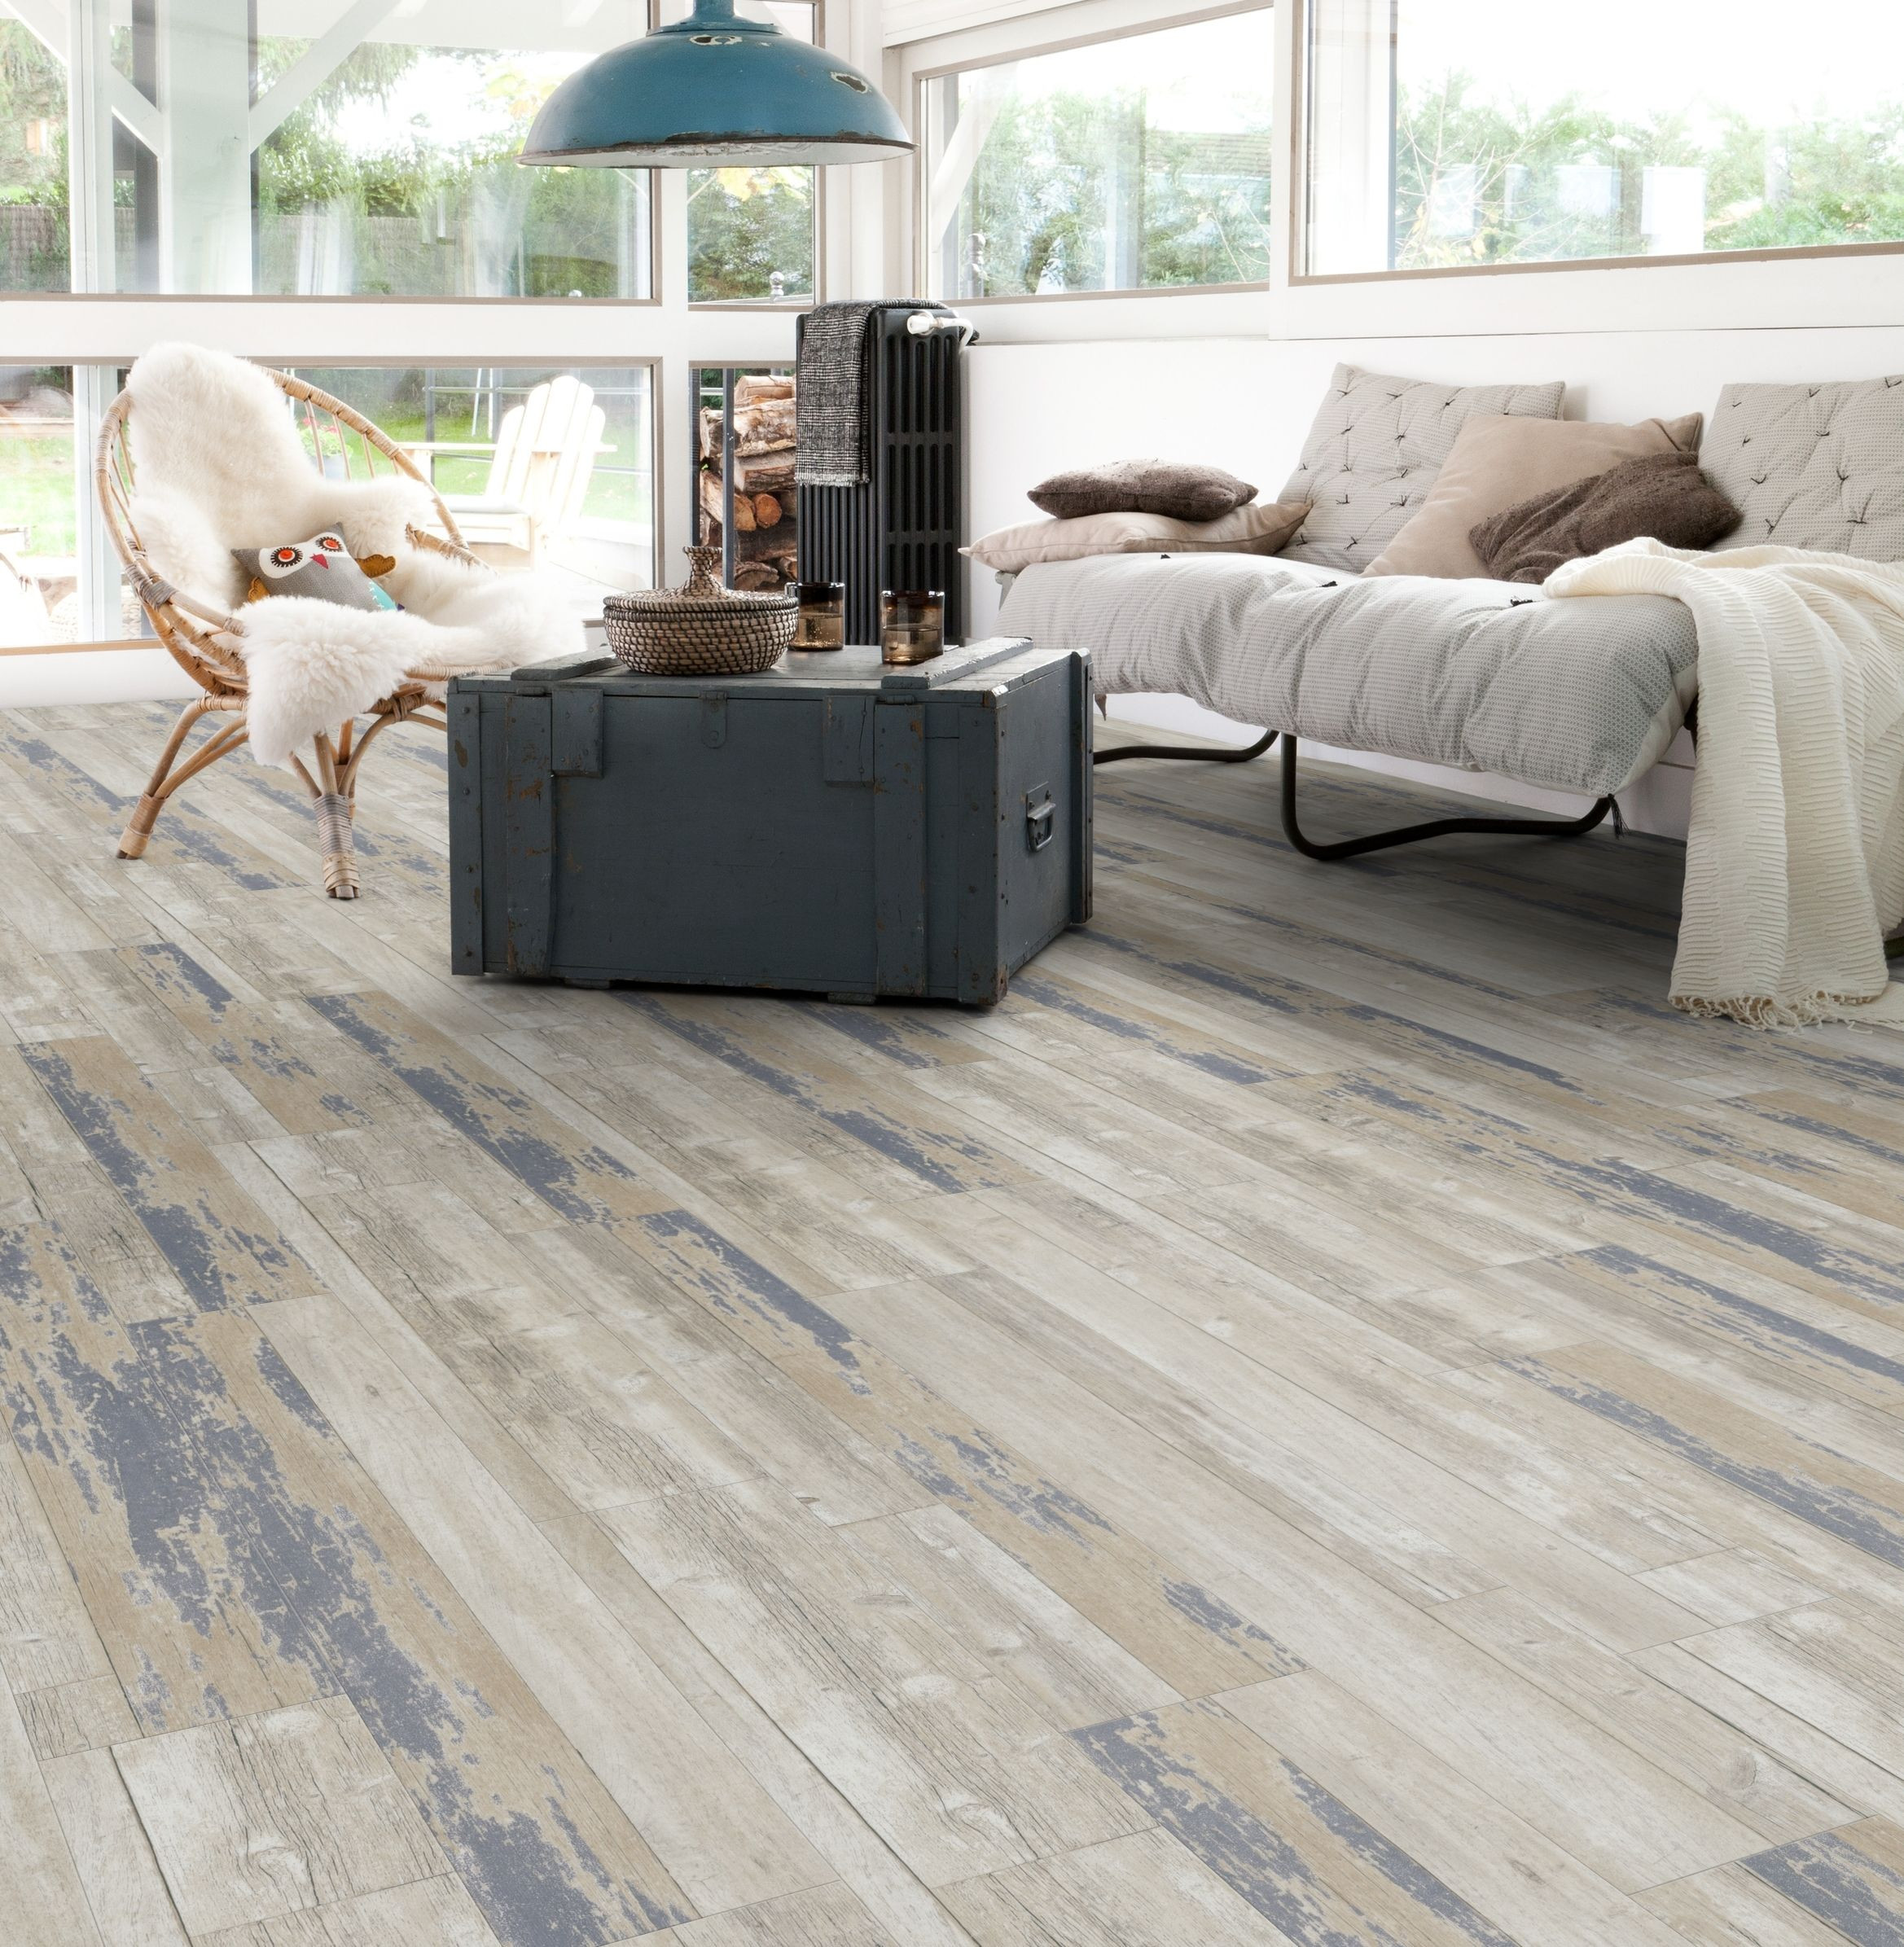 pvc hardwood flooring of harbor blue deco pinterest house intended for gerflor lock plus 55 harbor blue lame pvc clipsable parquet